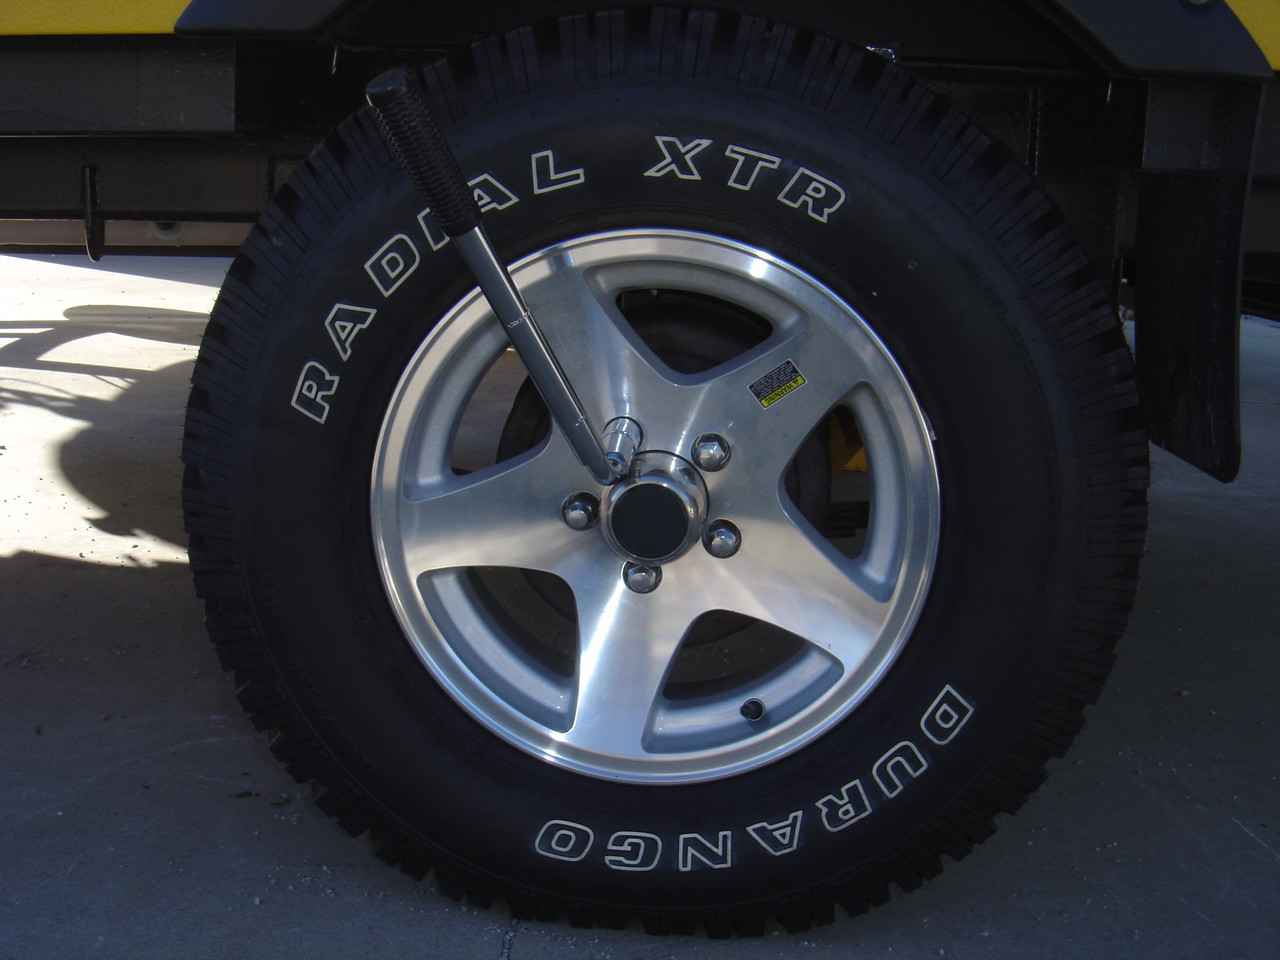 Loosen Lug nuts of the flat tire but do not remove them